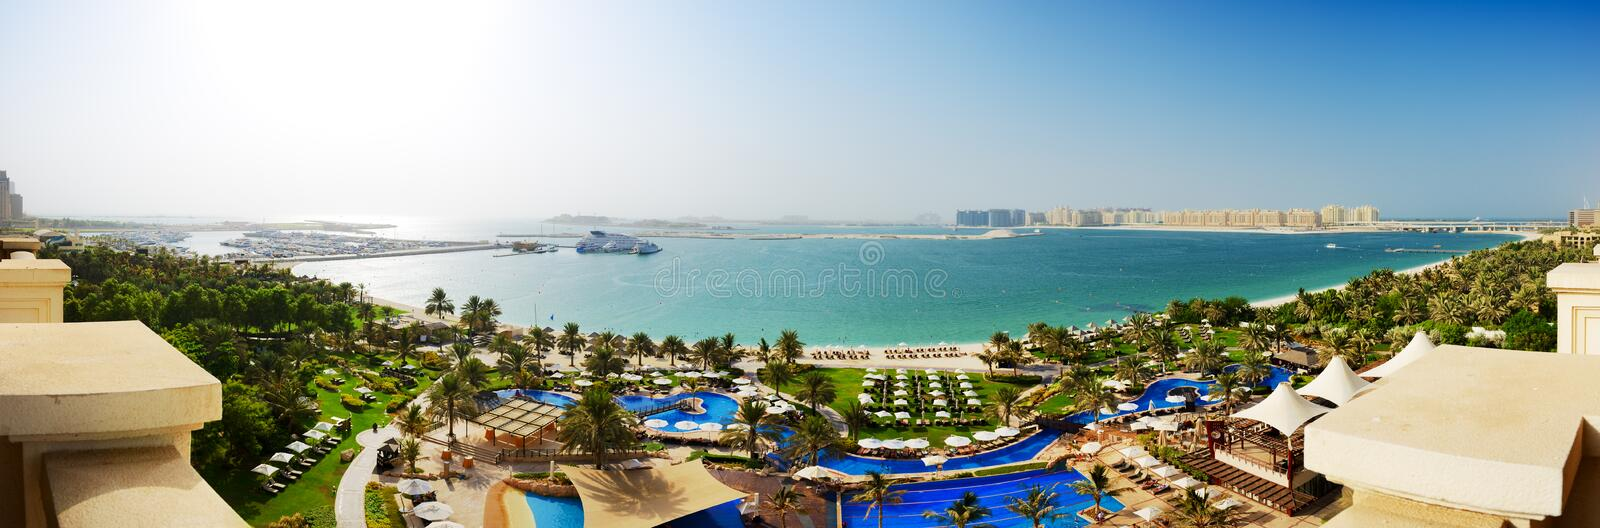 Panorama of beach with a view on Jumeirah Palm man-made island. Dubai, UAE royalty free stock images